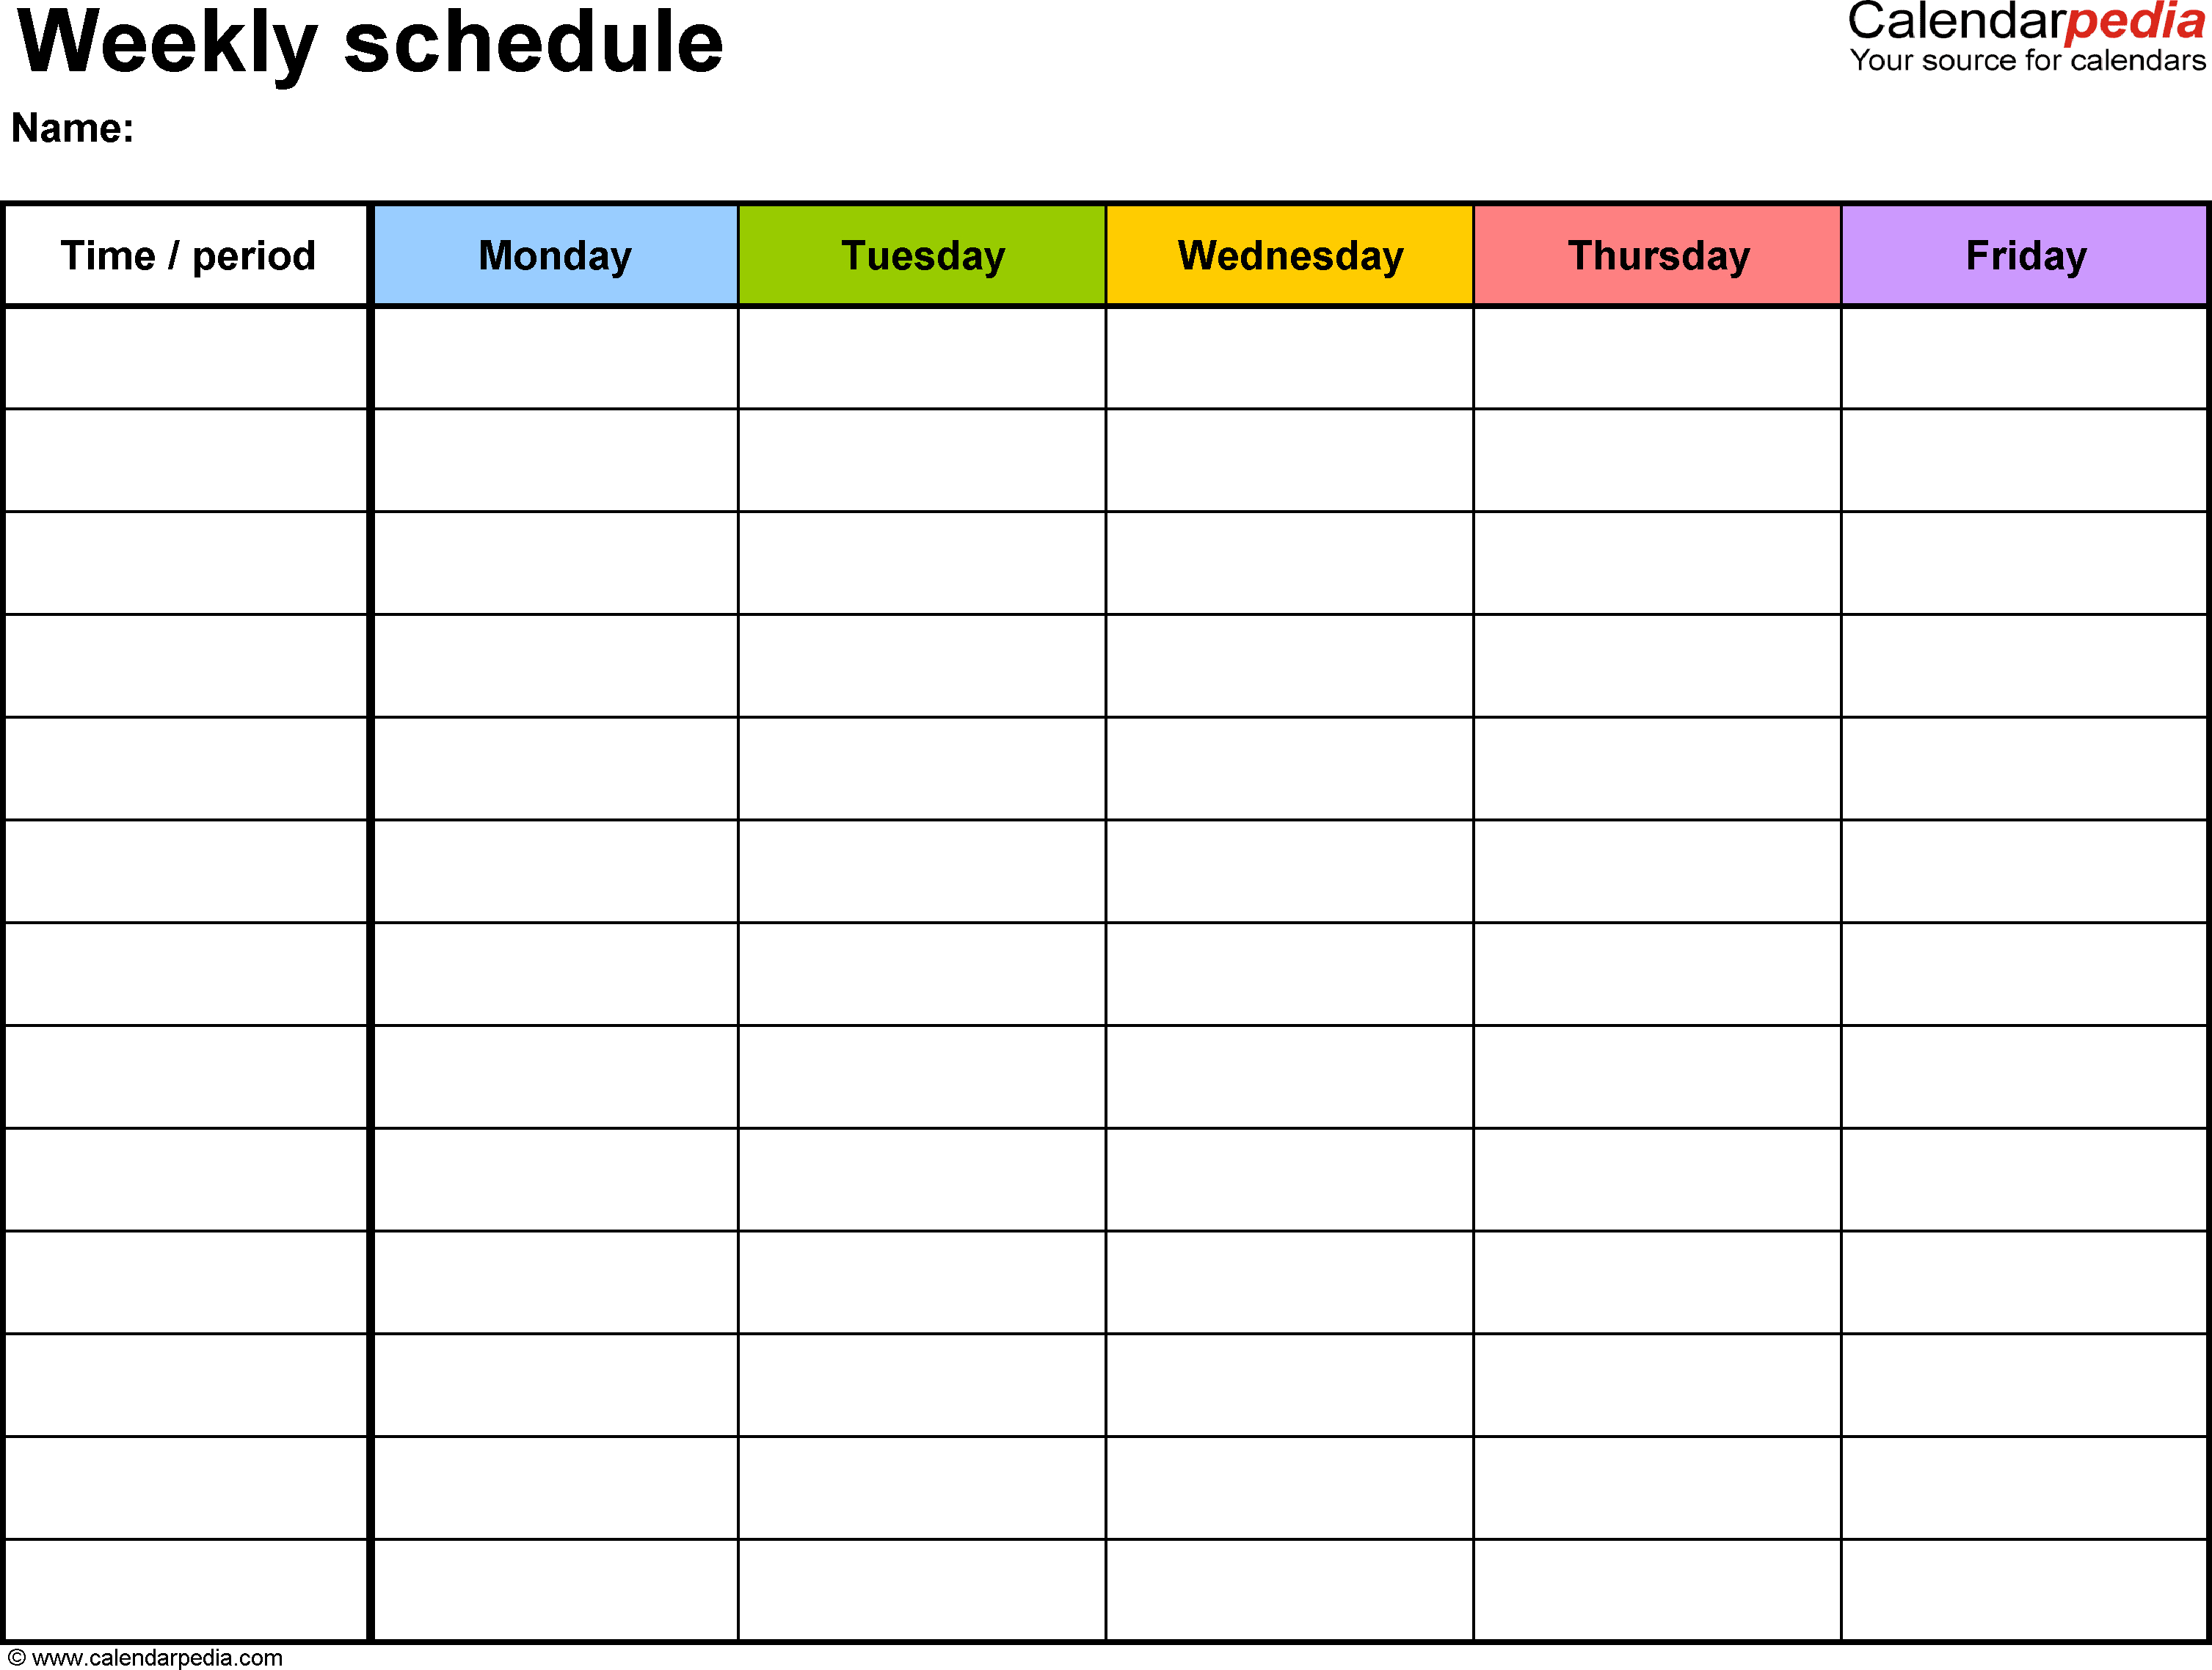 Weekly Schedule Template For Word Version 1: Landscape, 1 regarding Monday To Friday Planner Template